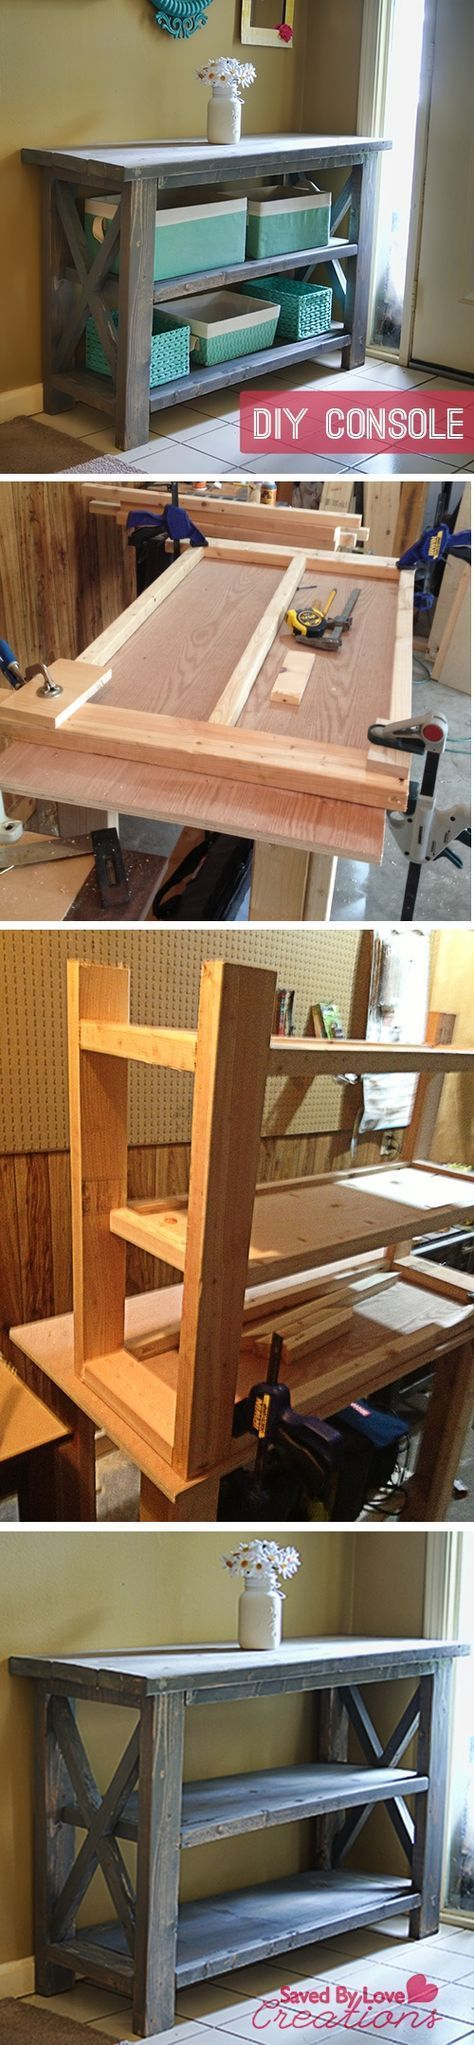 Rustic Console Table #woodworking #DIY plan from Ana White I need a place to put baskets to hold all the stuff that used to end up on the kitchen counter, table, desk #woodworkingbench